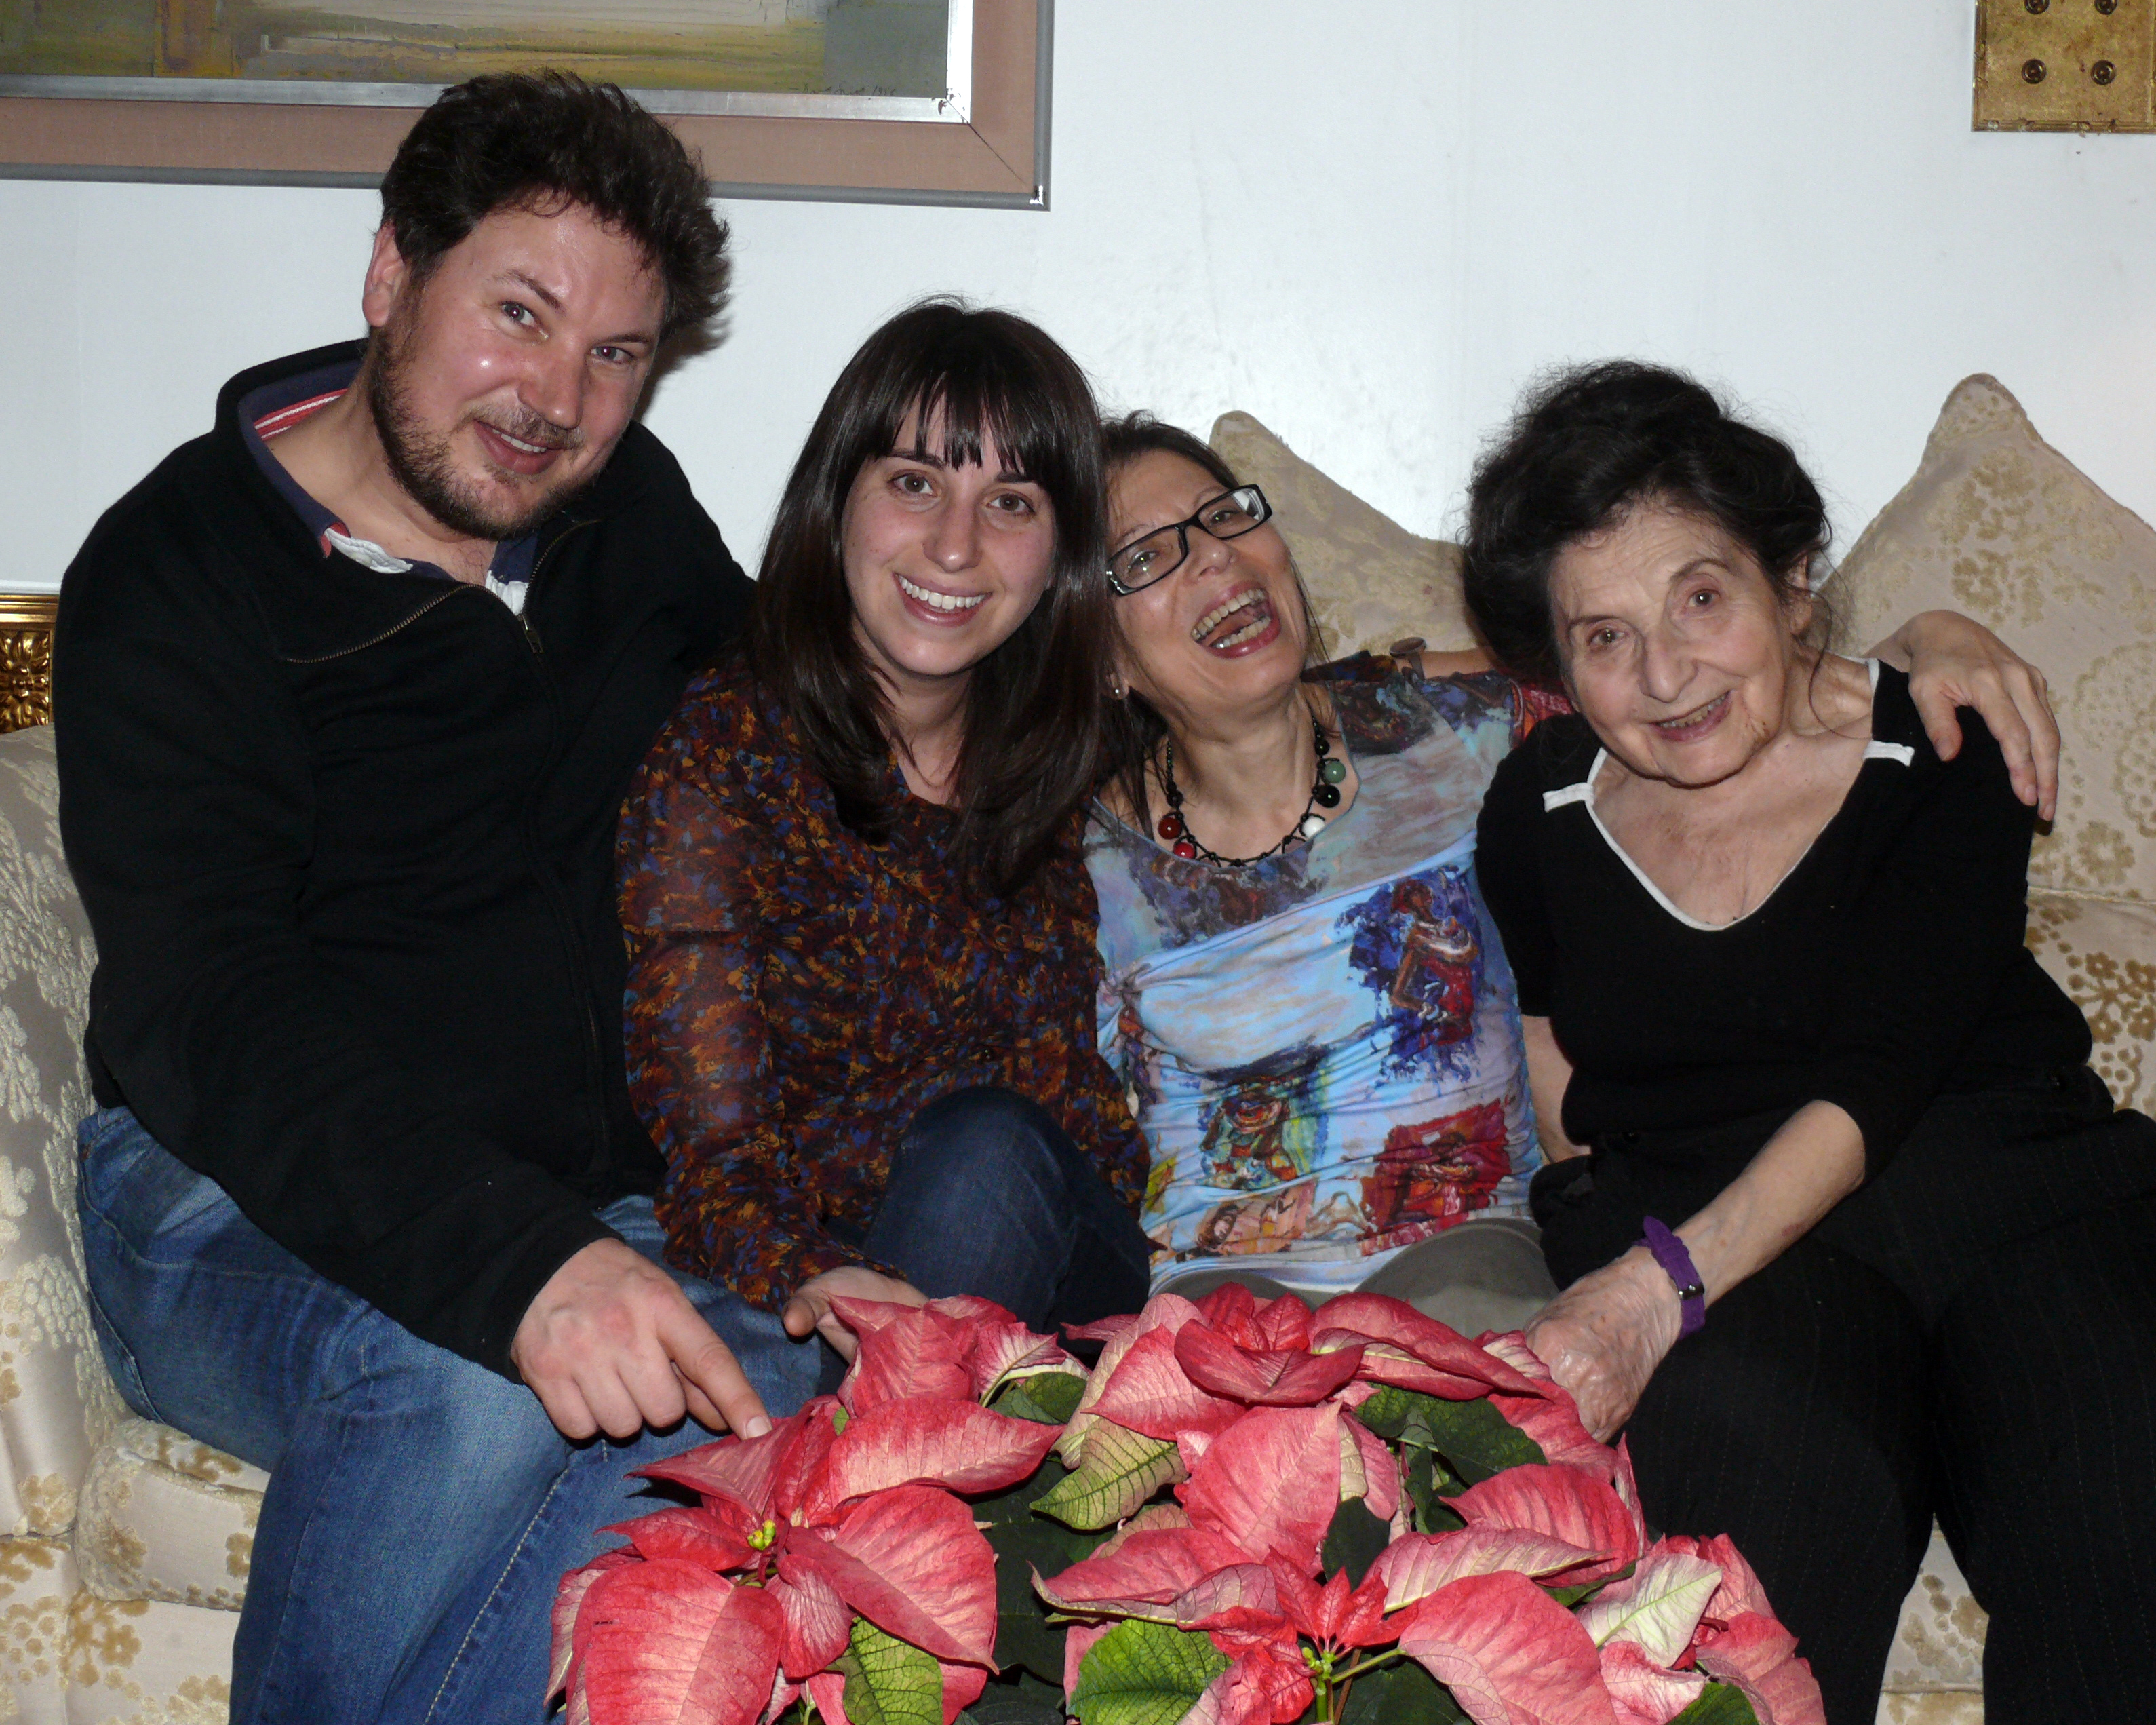 Milly & Shula Rich, Niece Caroline & Phil, sitting on the sofa all smiling